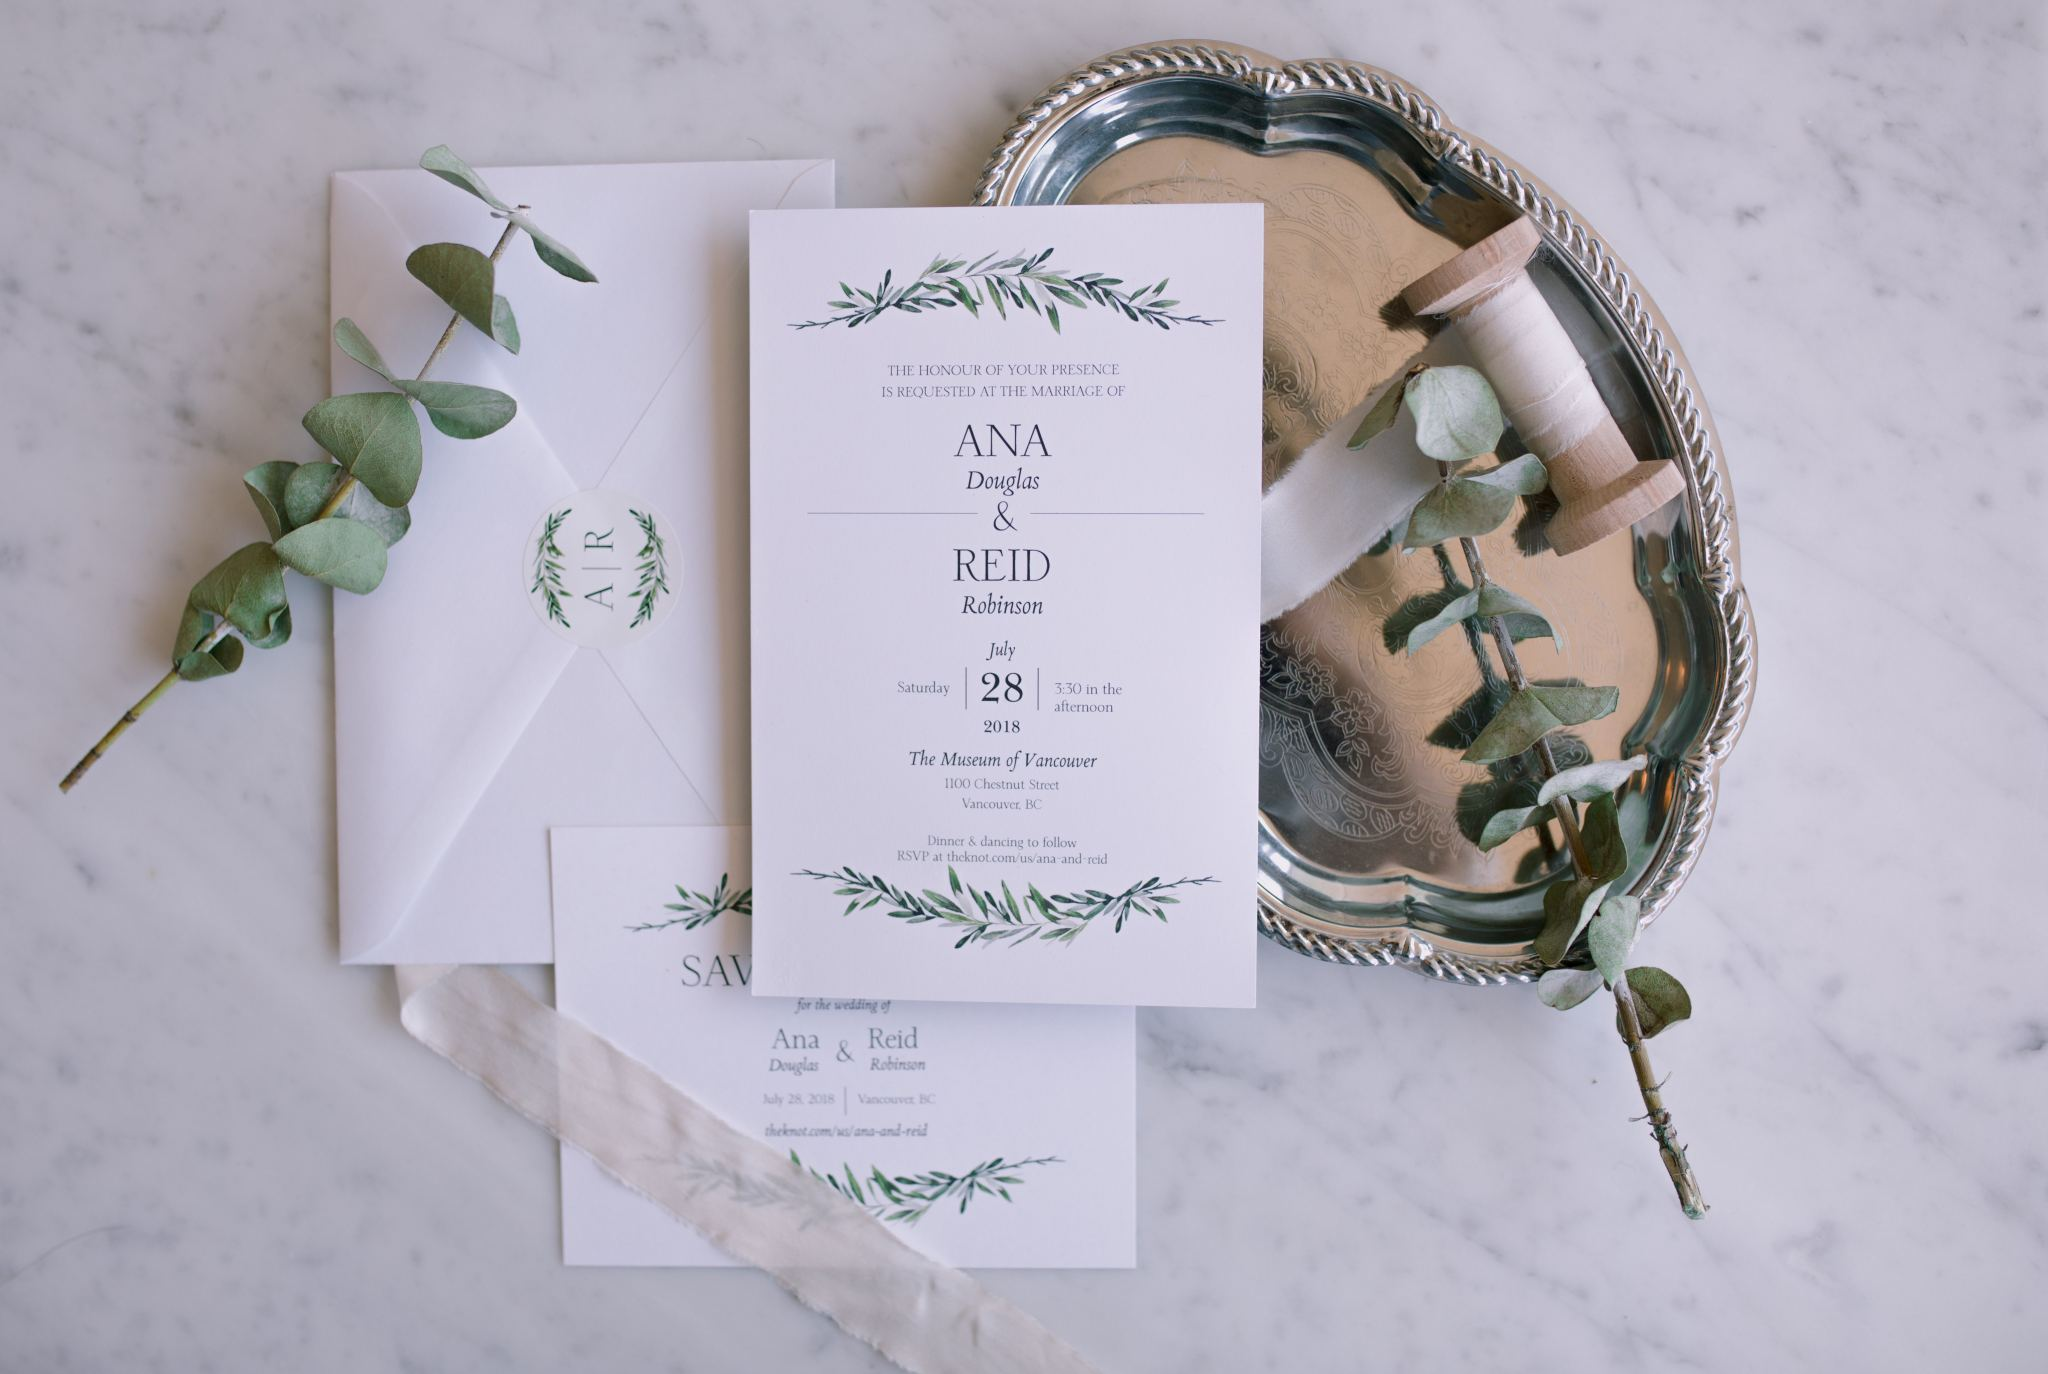 Why I Chose Vistaprint for My Wedding Invitations - Ana Douglas